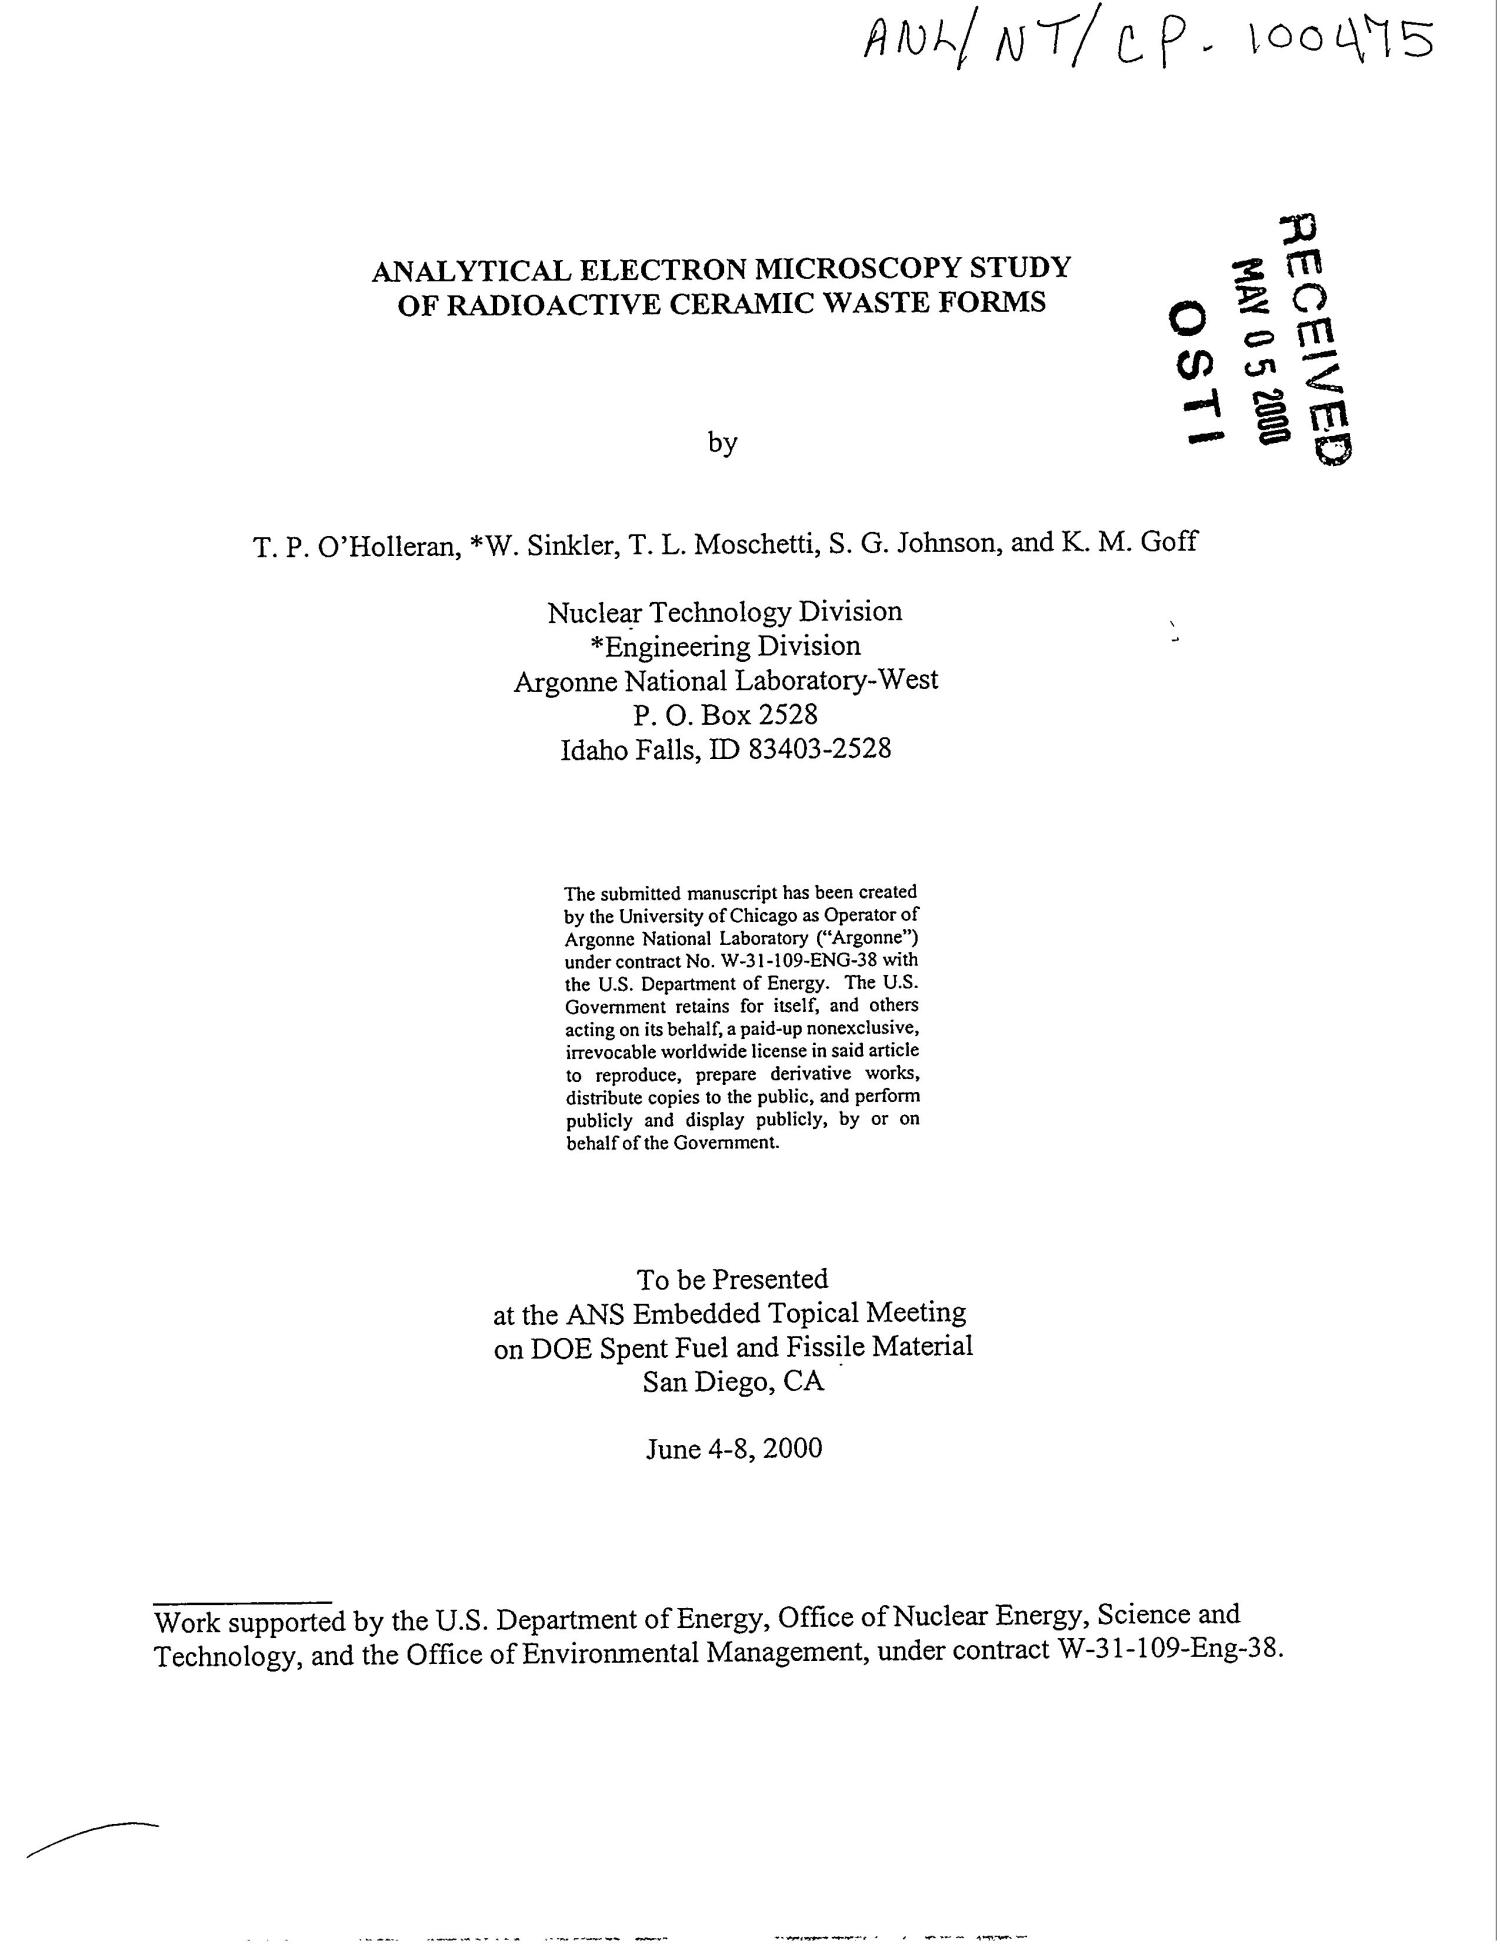 Analytical electron microscopy study of radioactive ceramic waste form                                                                                                      [Sequence #]: 1 of 11